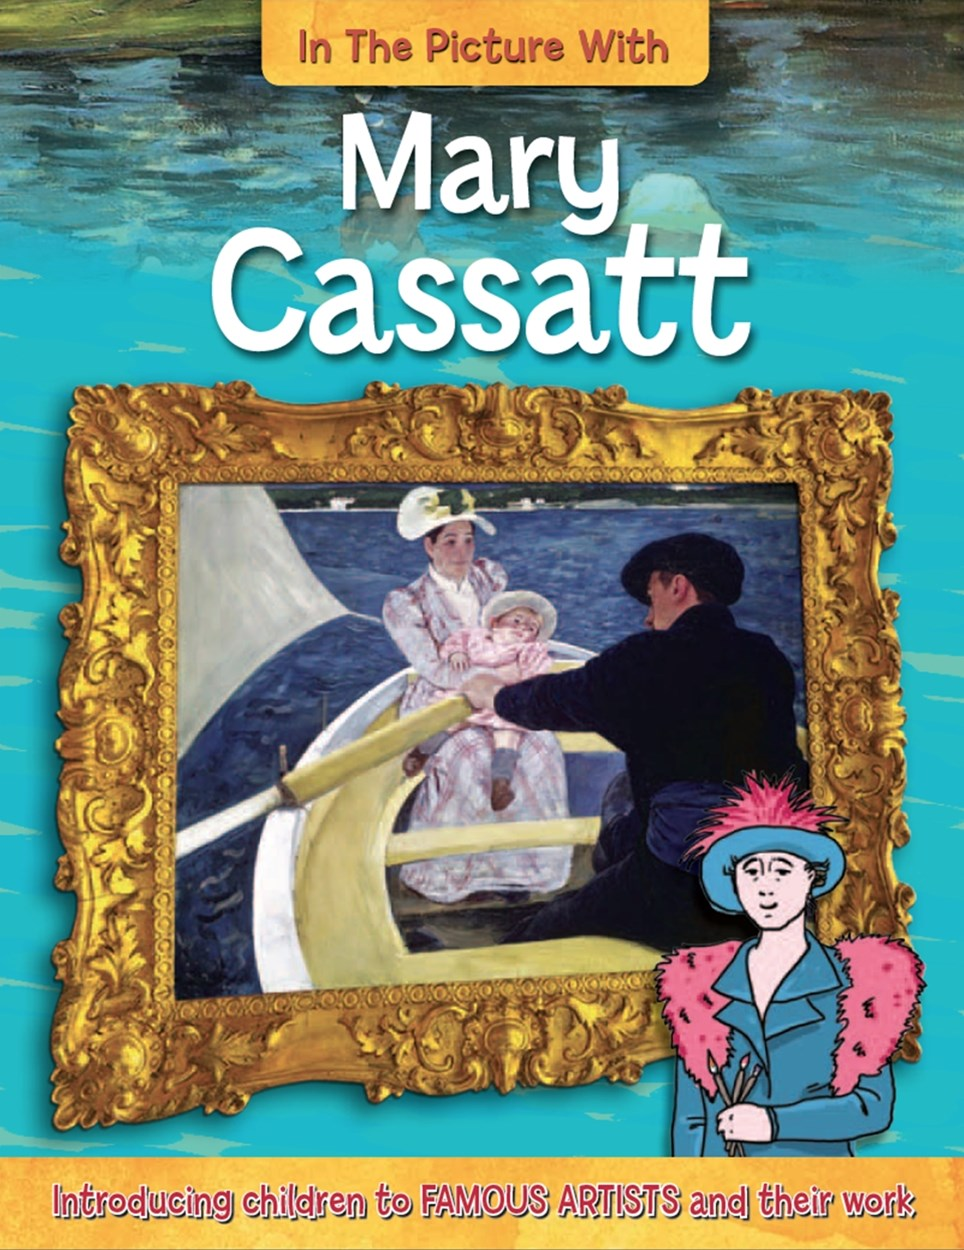 In the Picture With Mary Cassatt